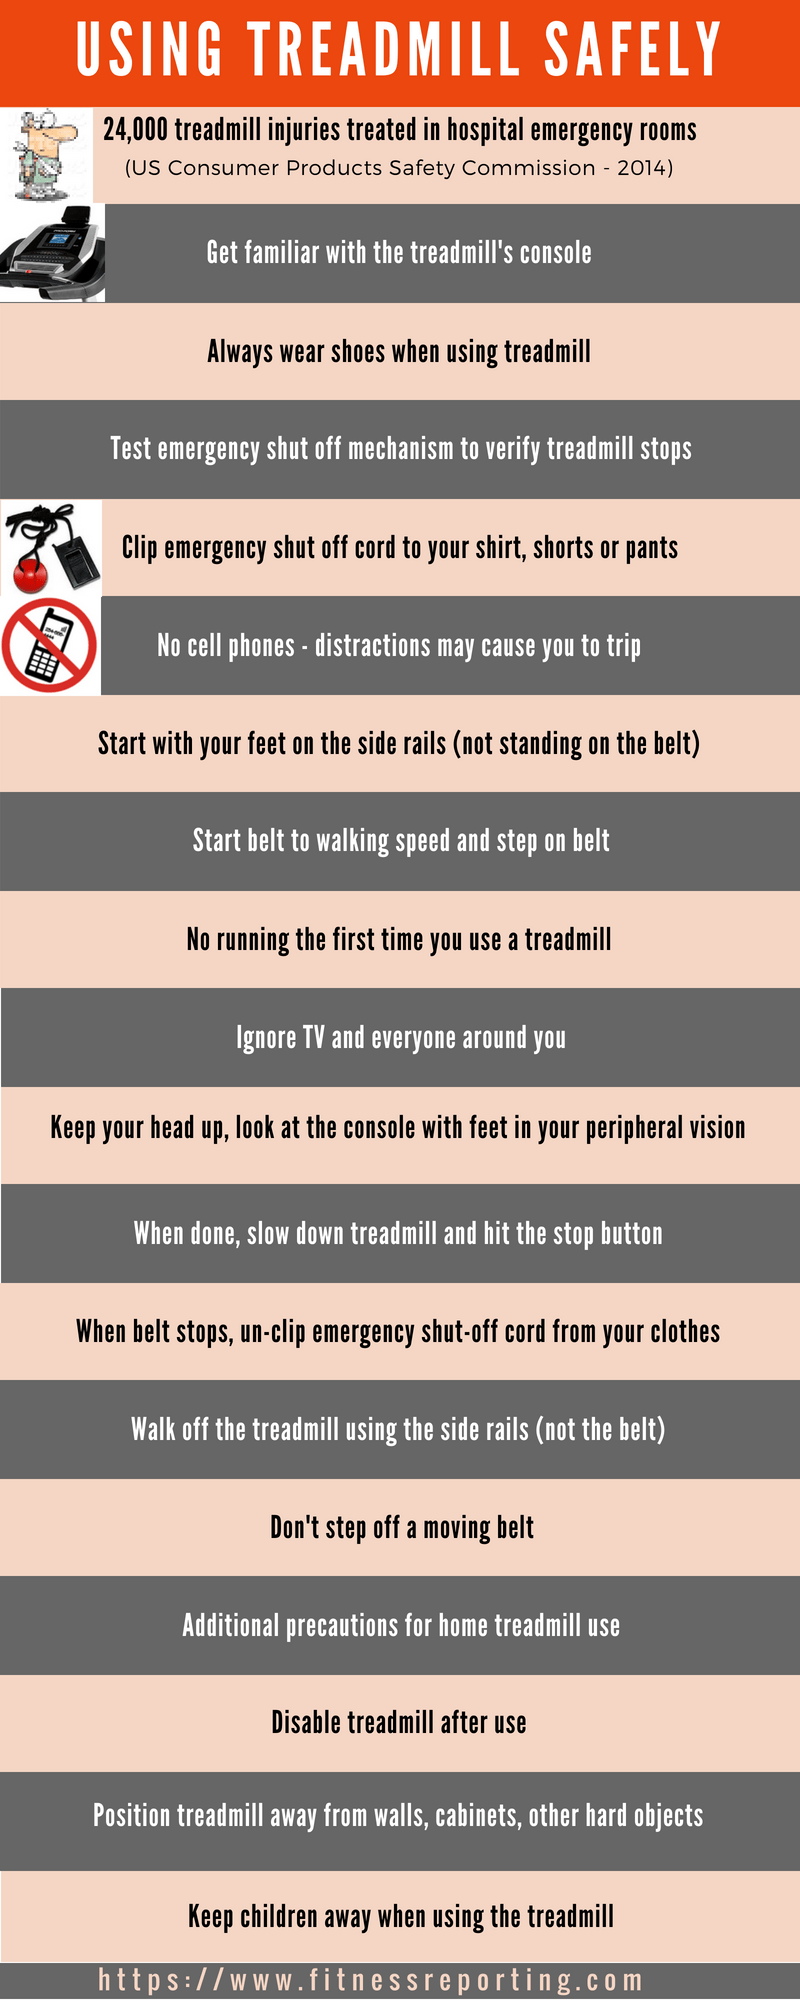 infographics on using treadmill safely